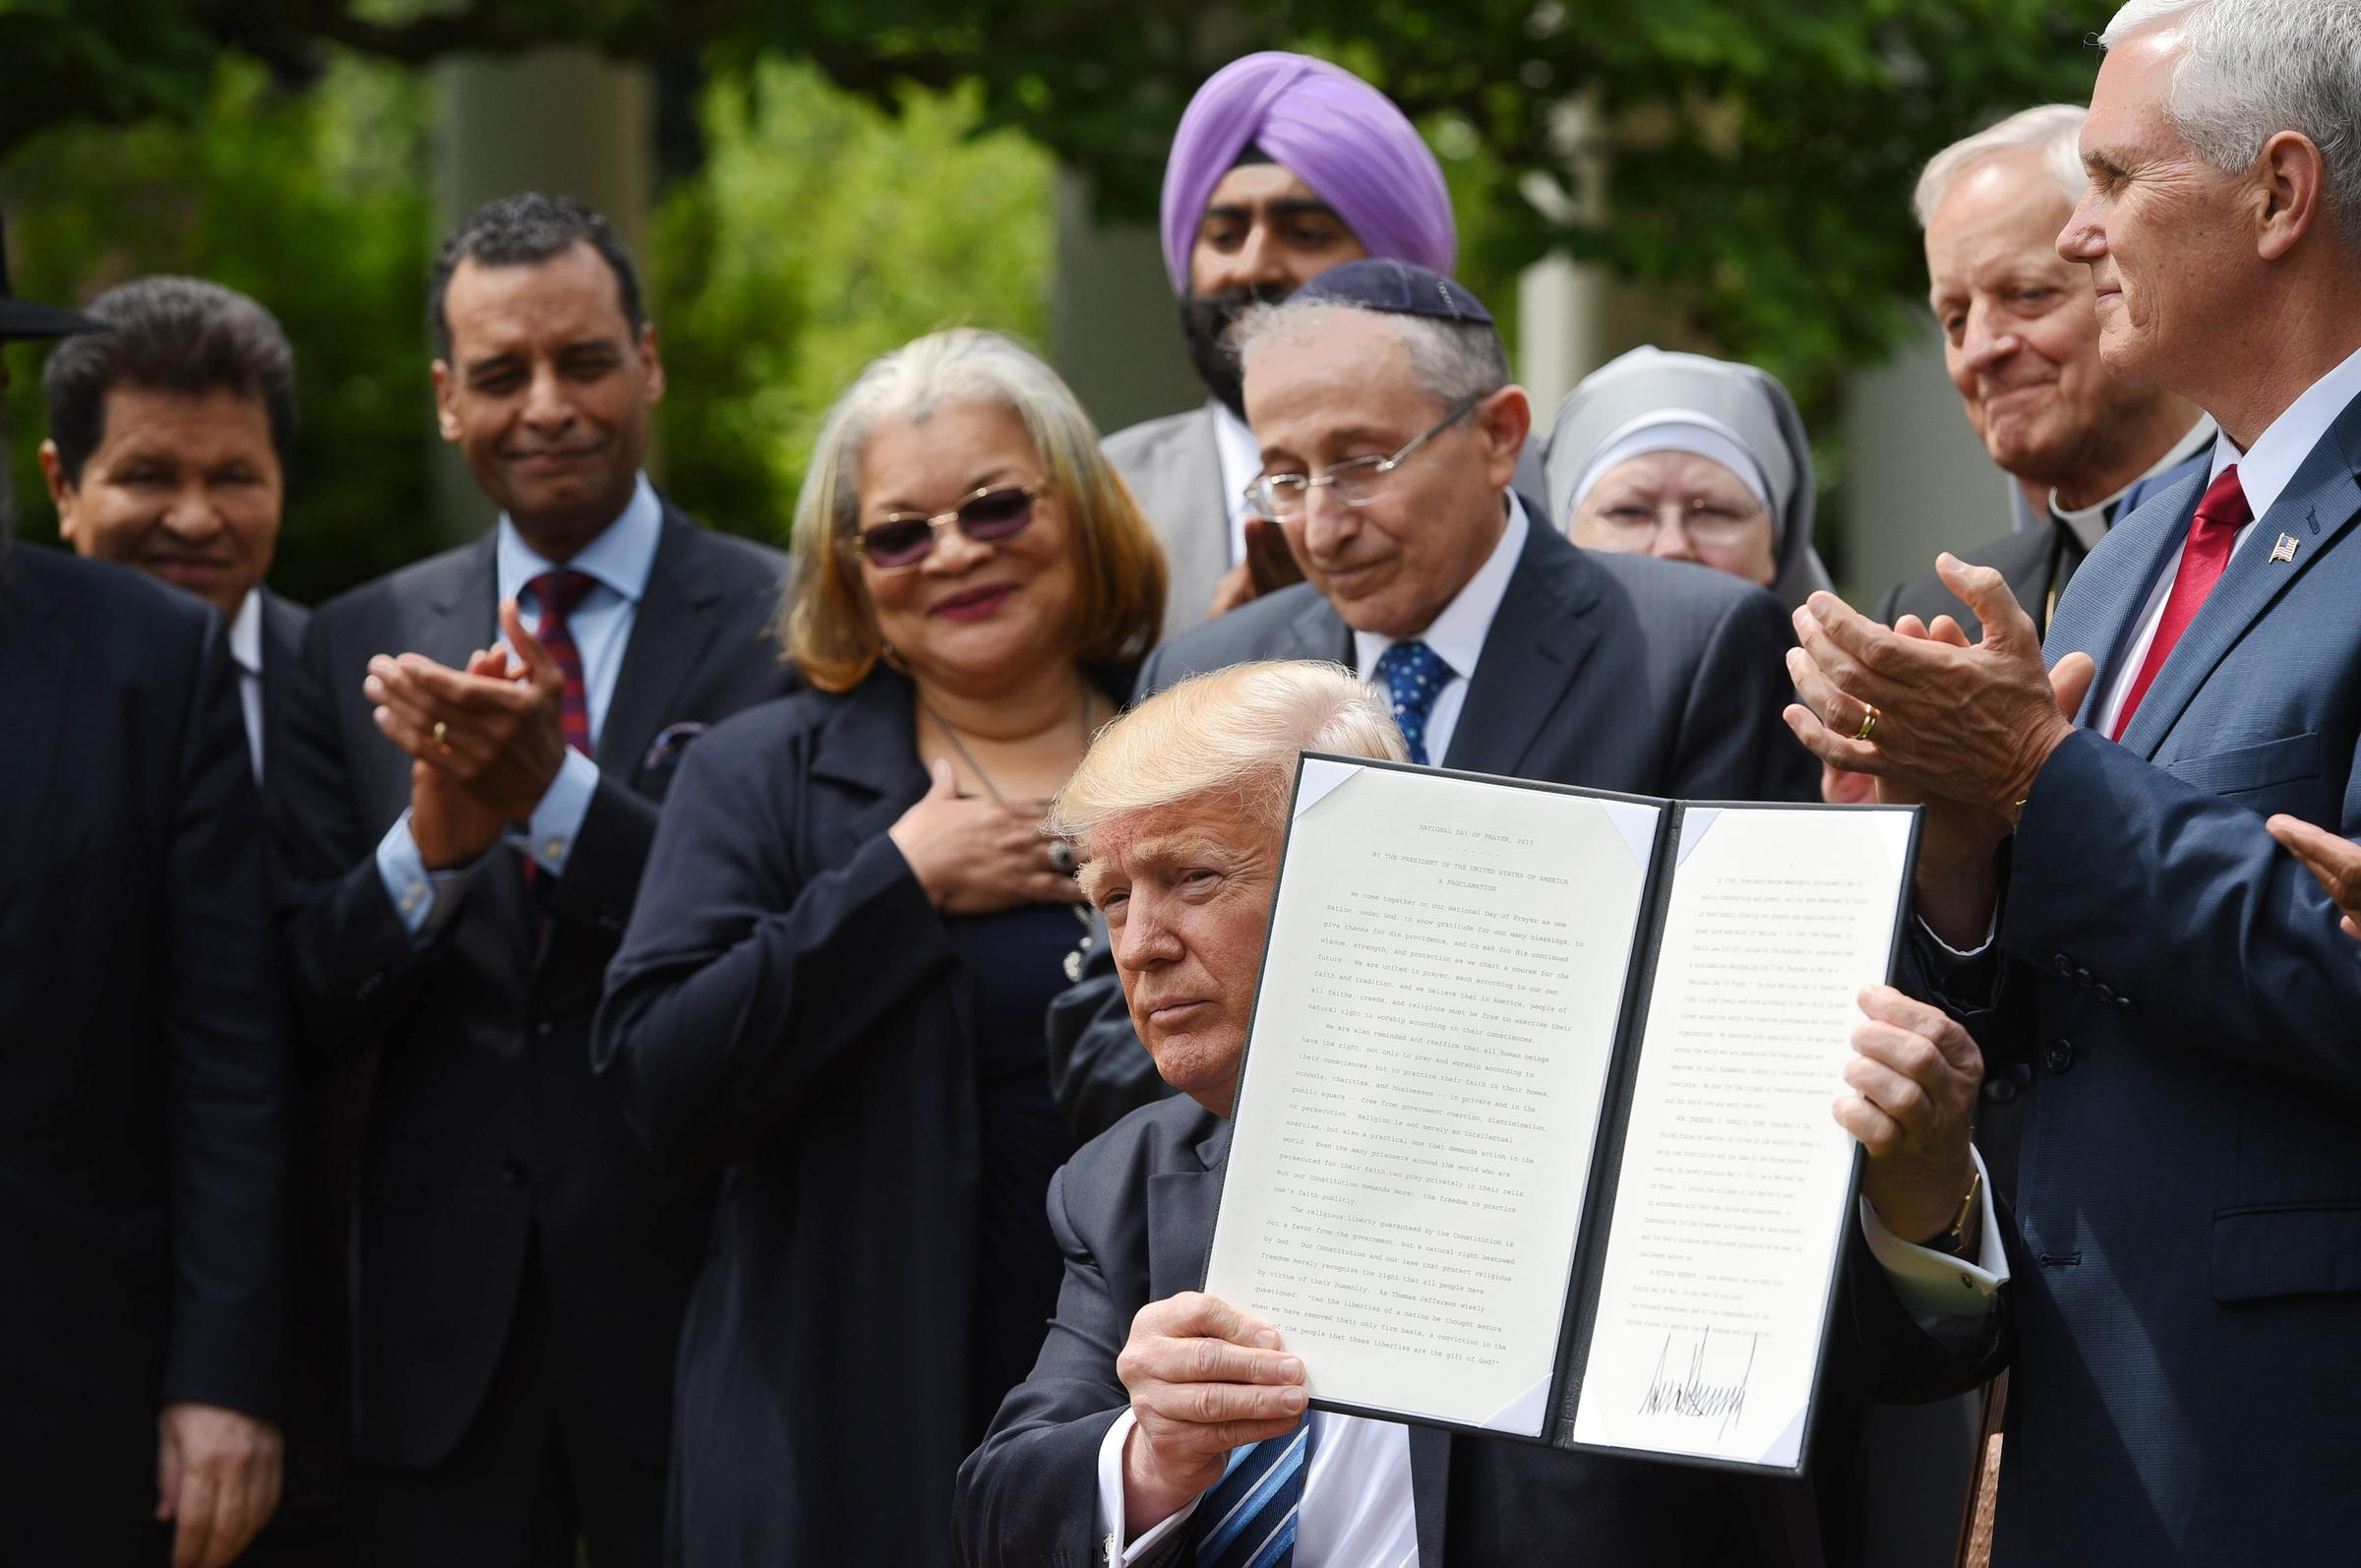 Trump eases restrictions on religious groups